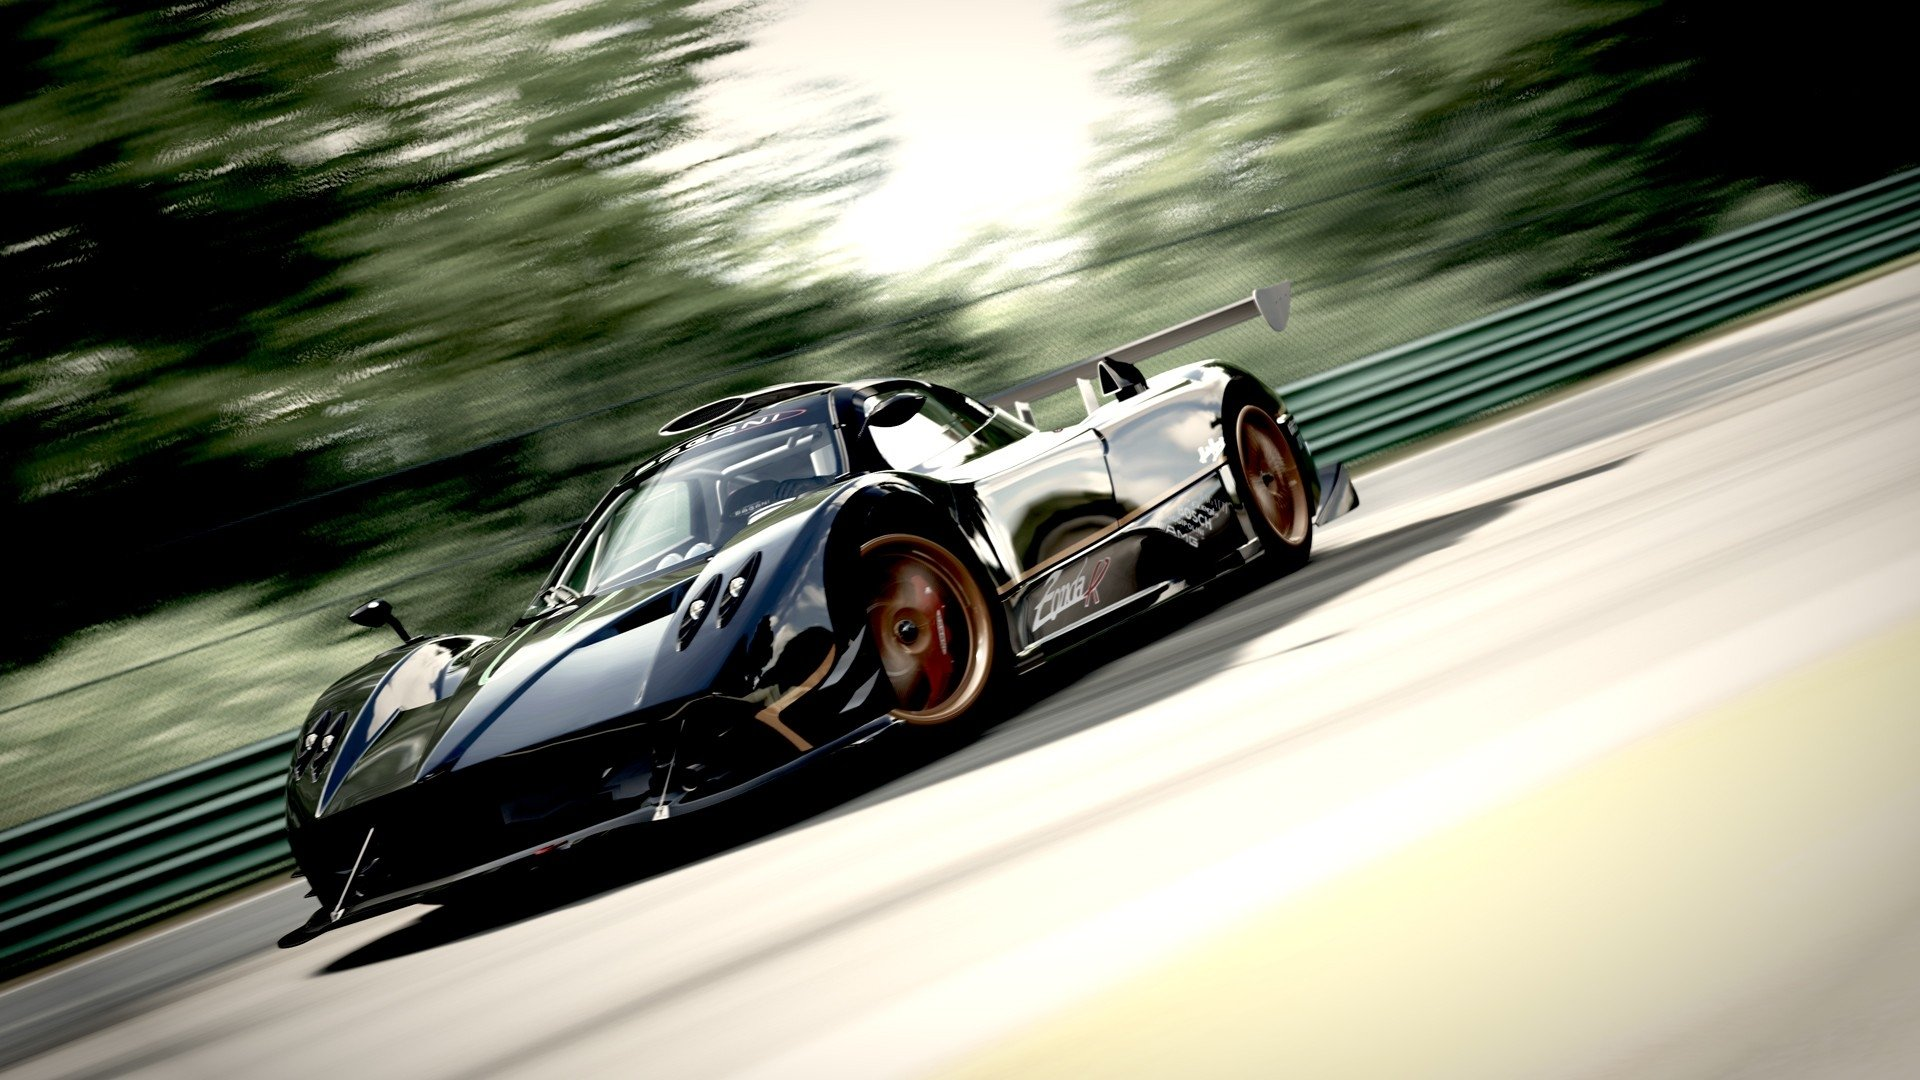 151 Pagani Zonda HD Wallpapers Background Images 1920x1080